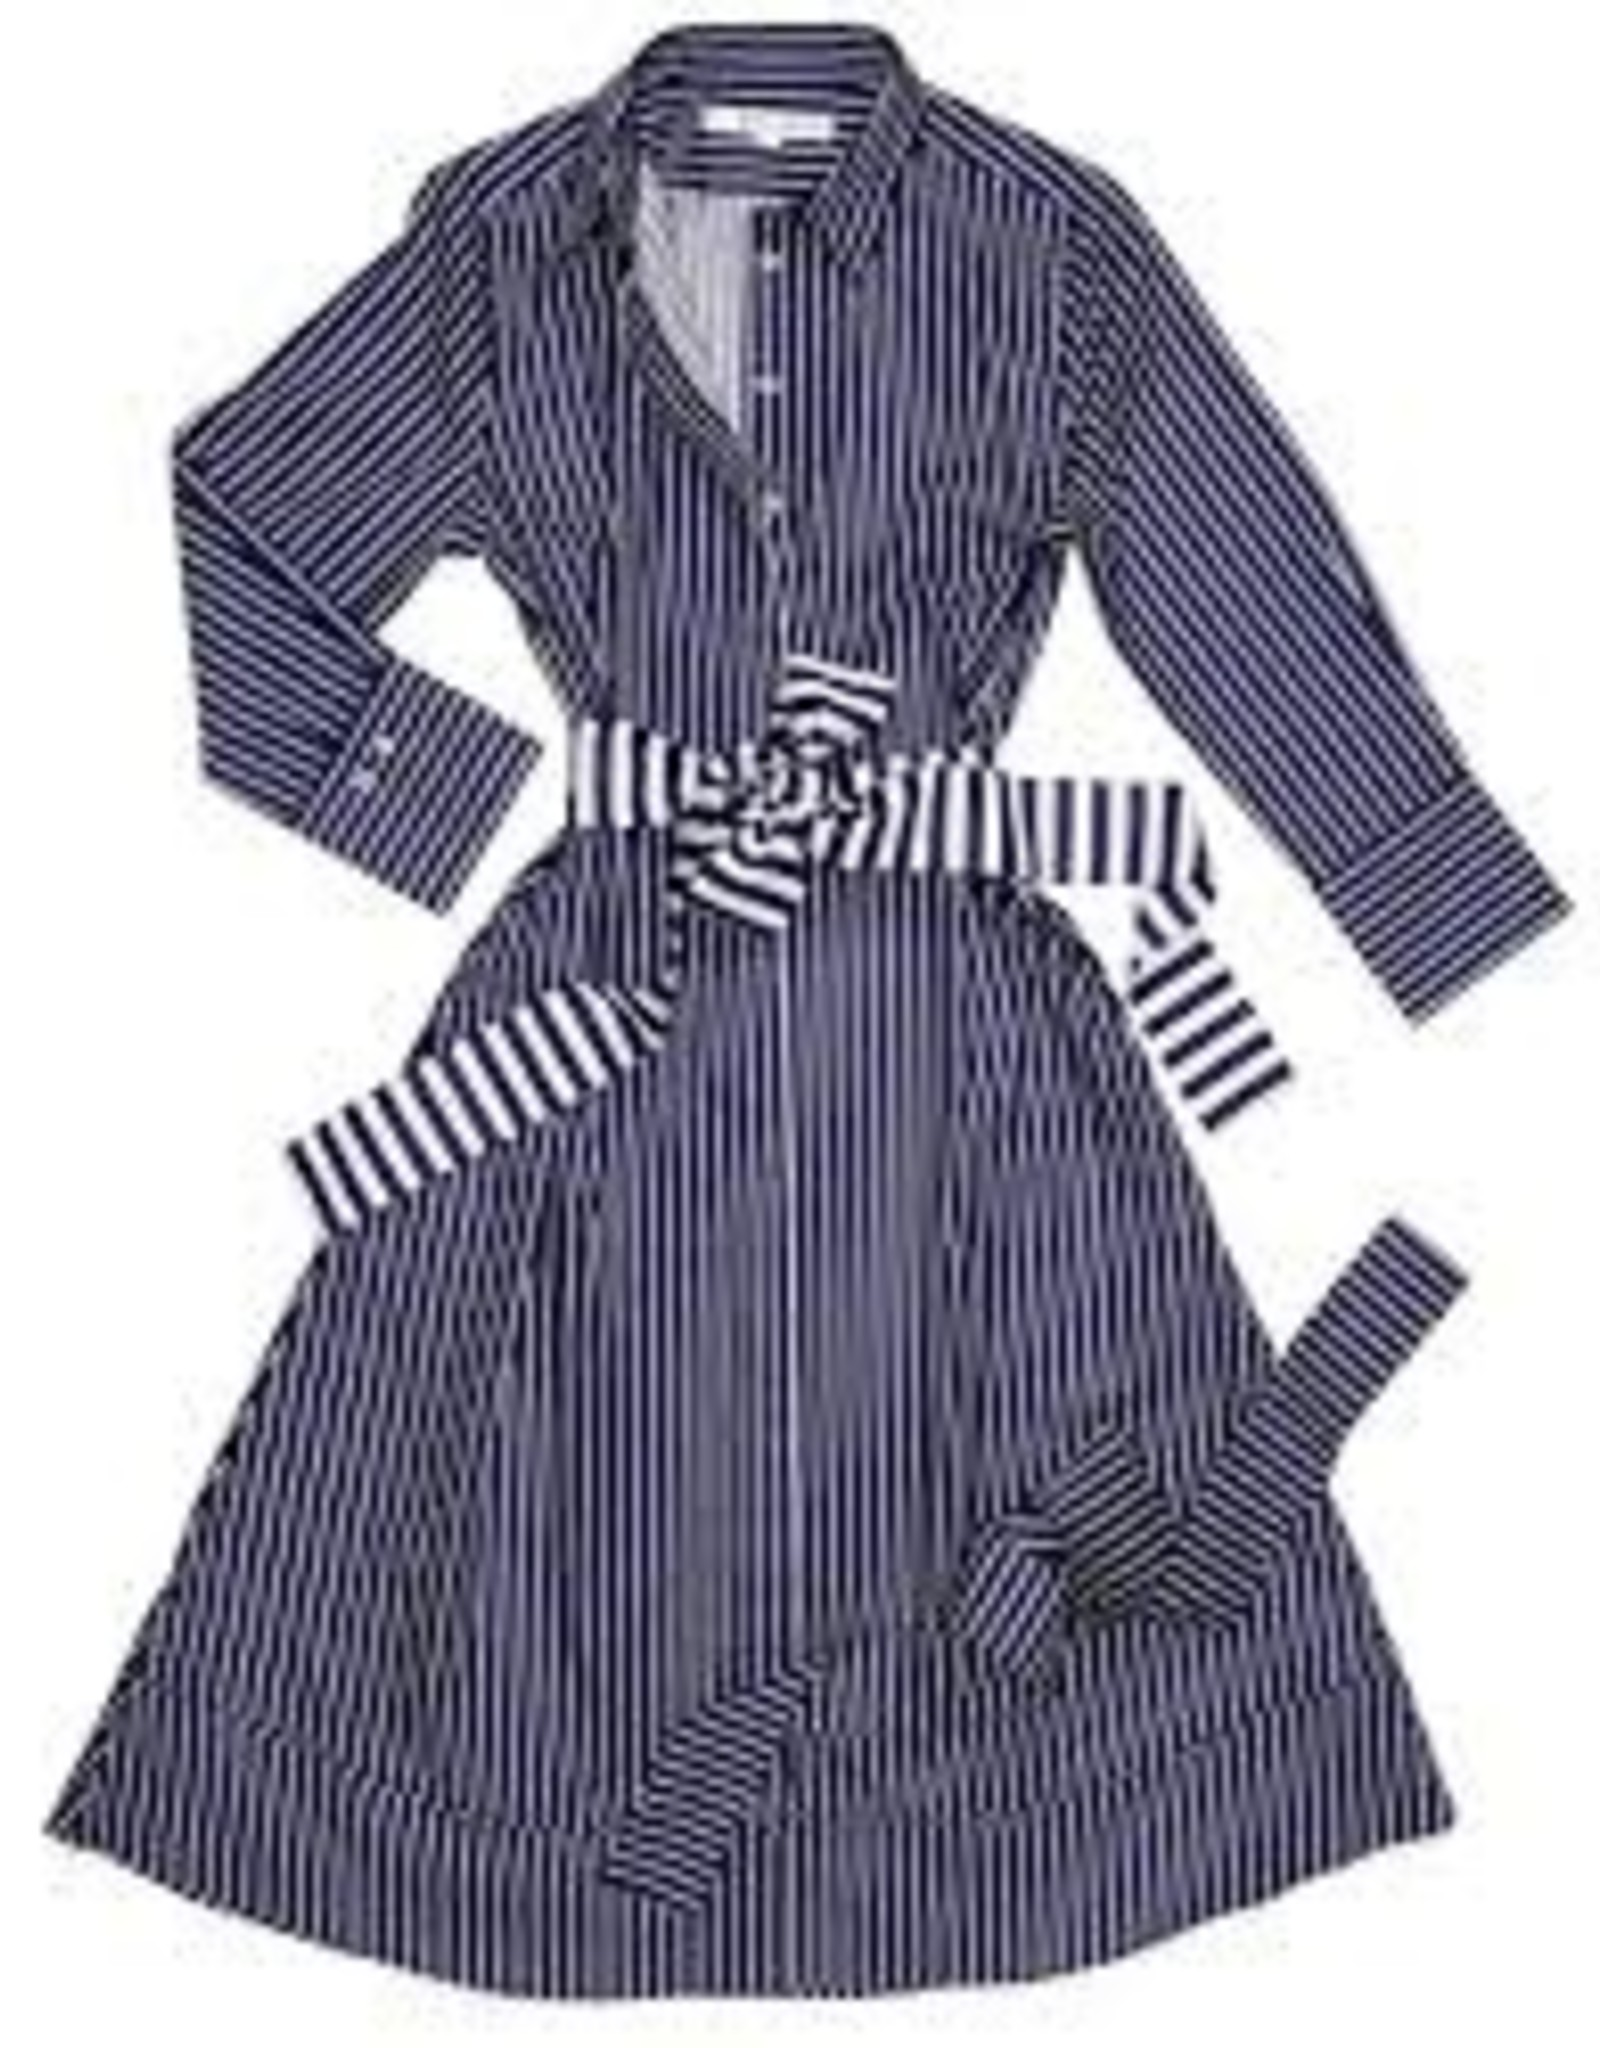 Claridge & King A-Line Shirtdress